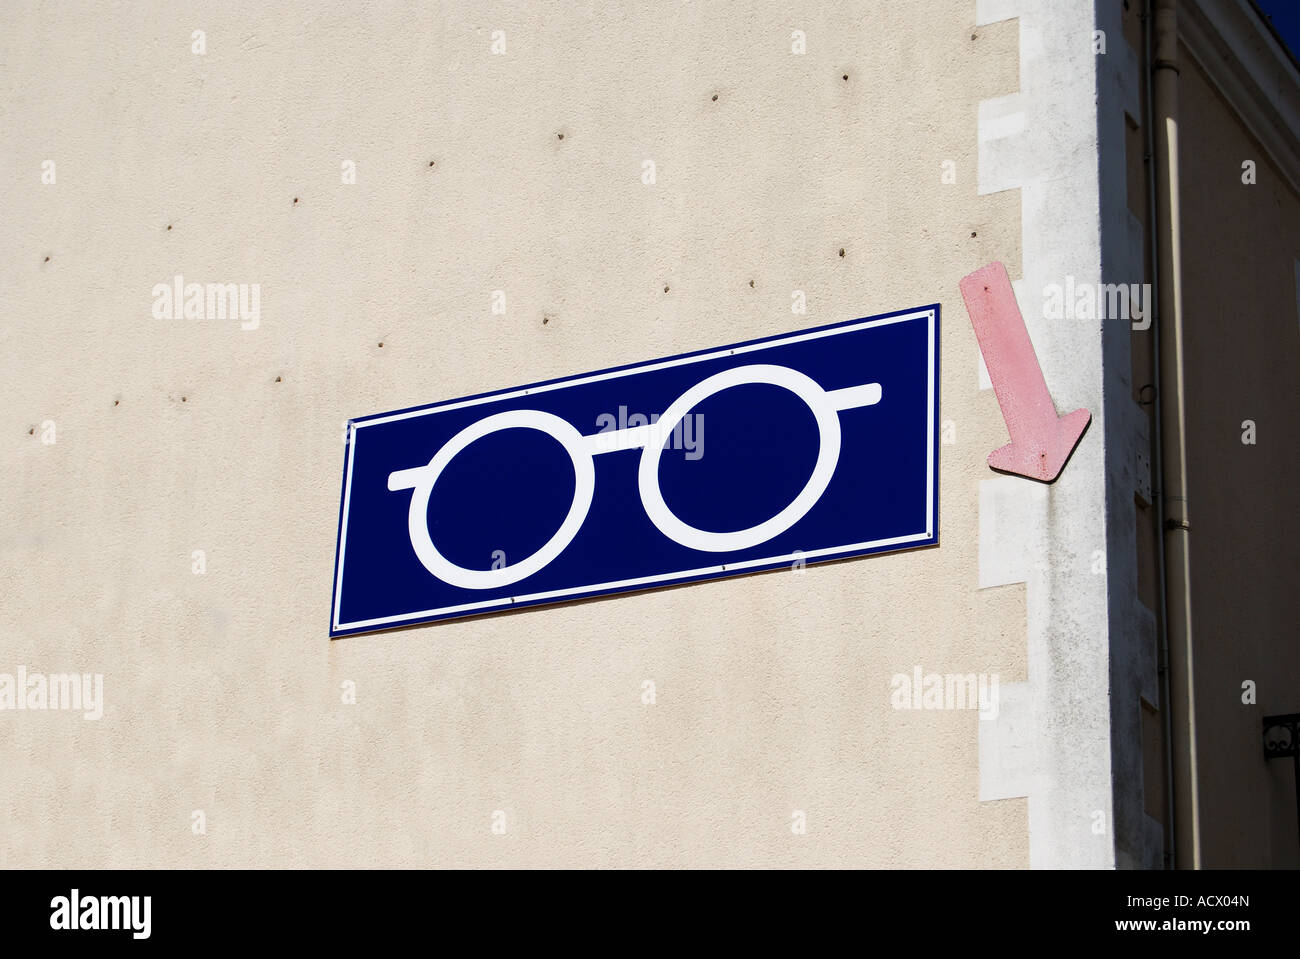 buy your spectacles here st gilles france no 2502 Stock Photo